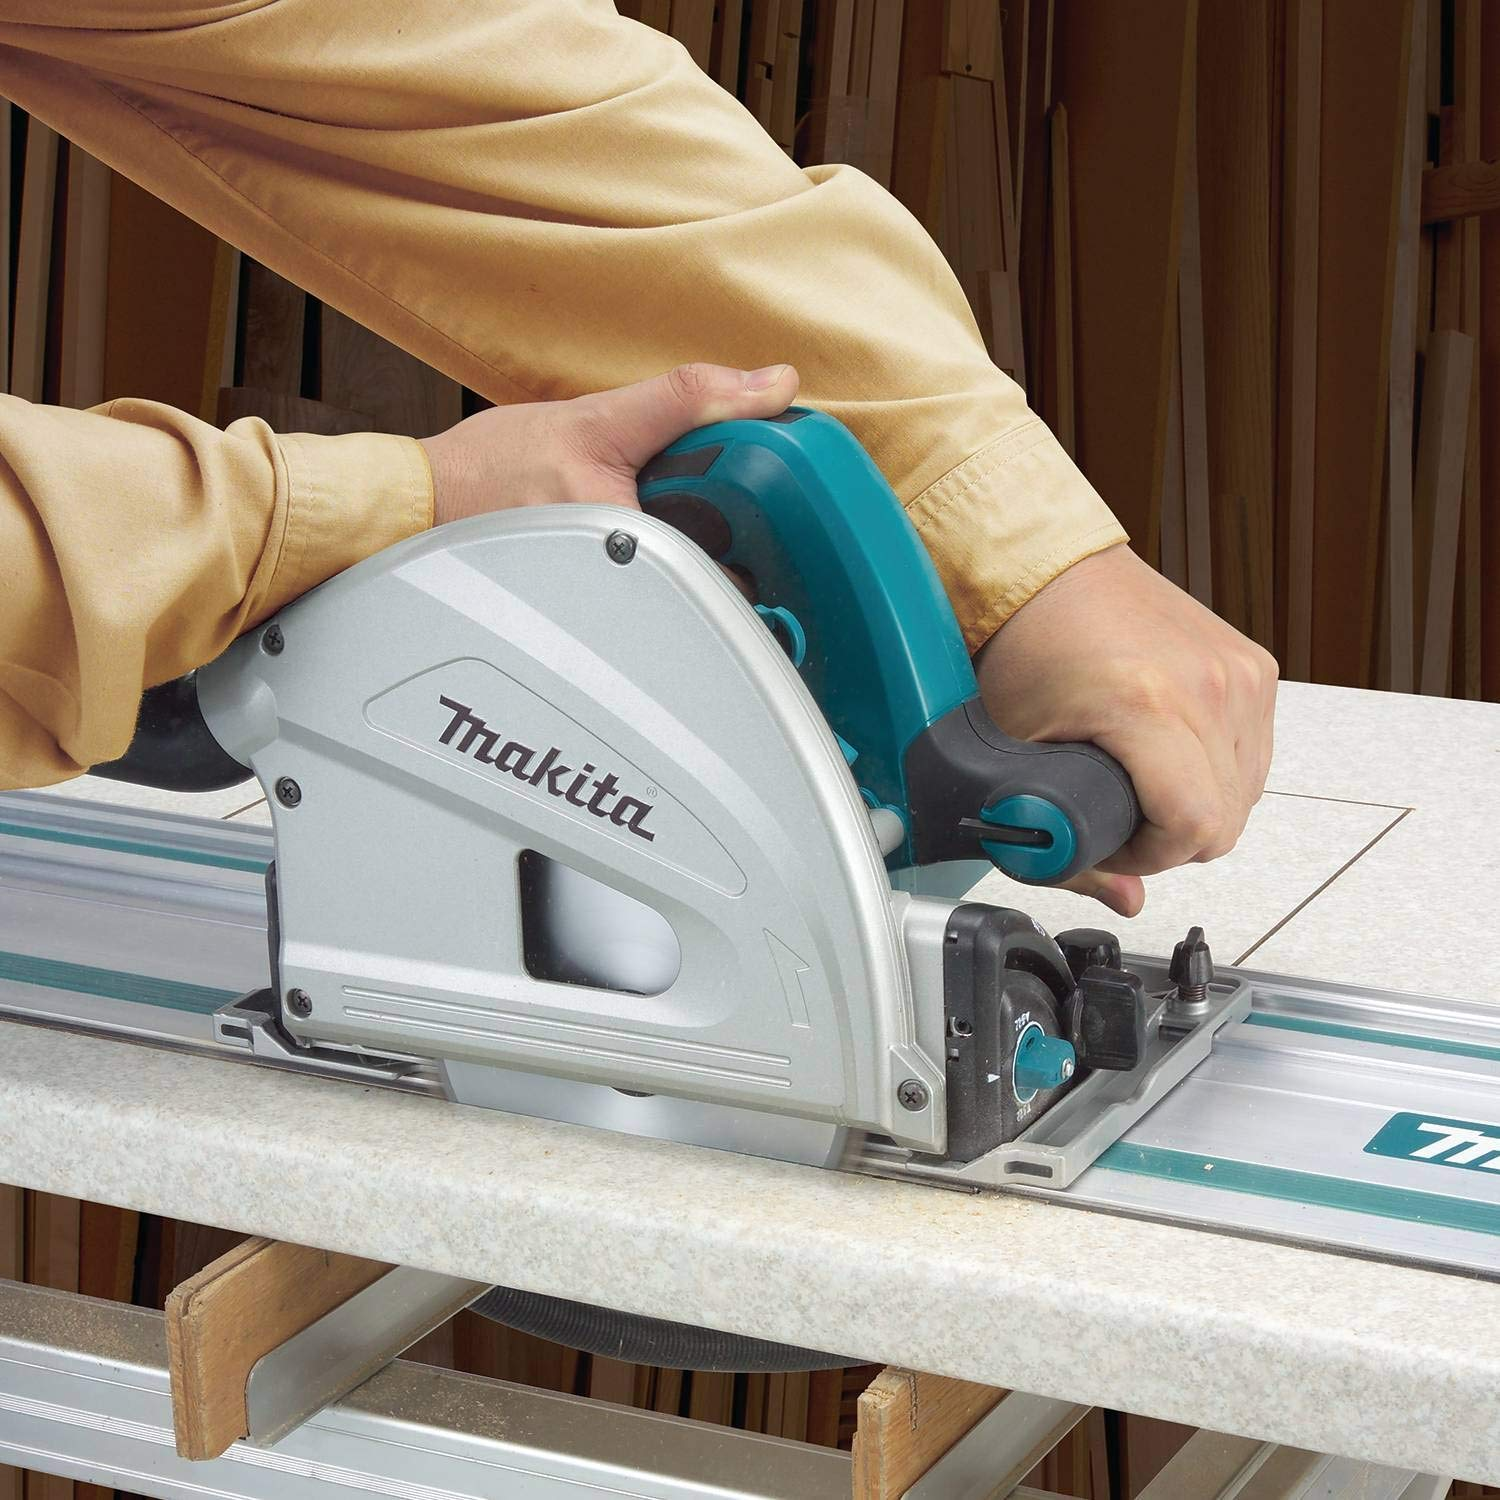 demonstration of track saw